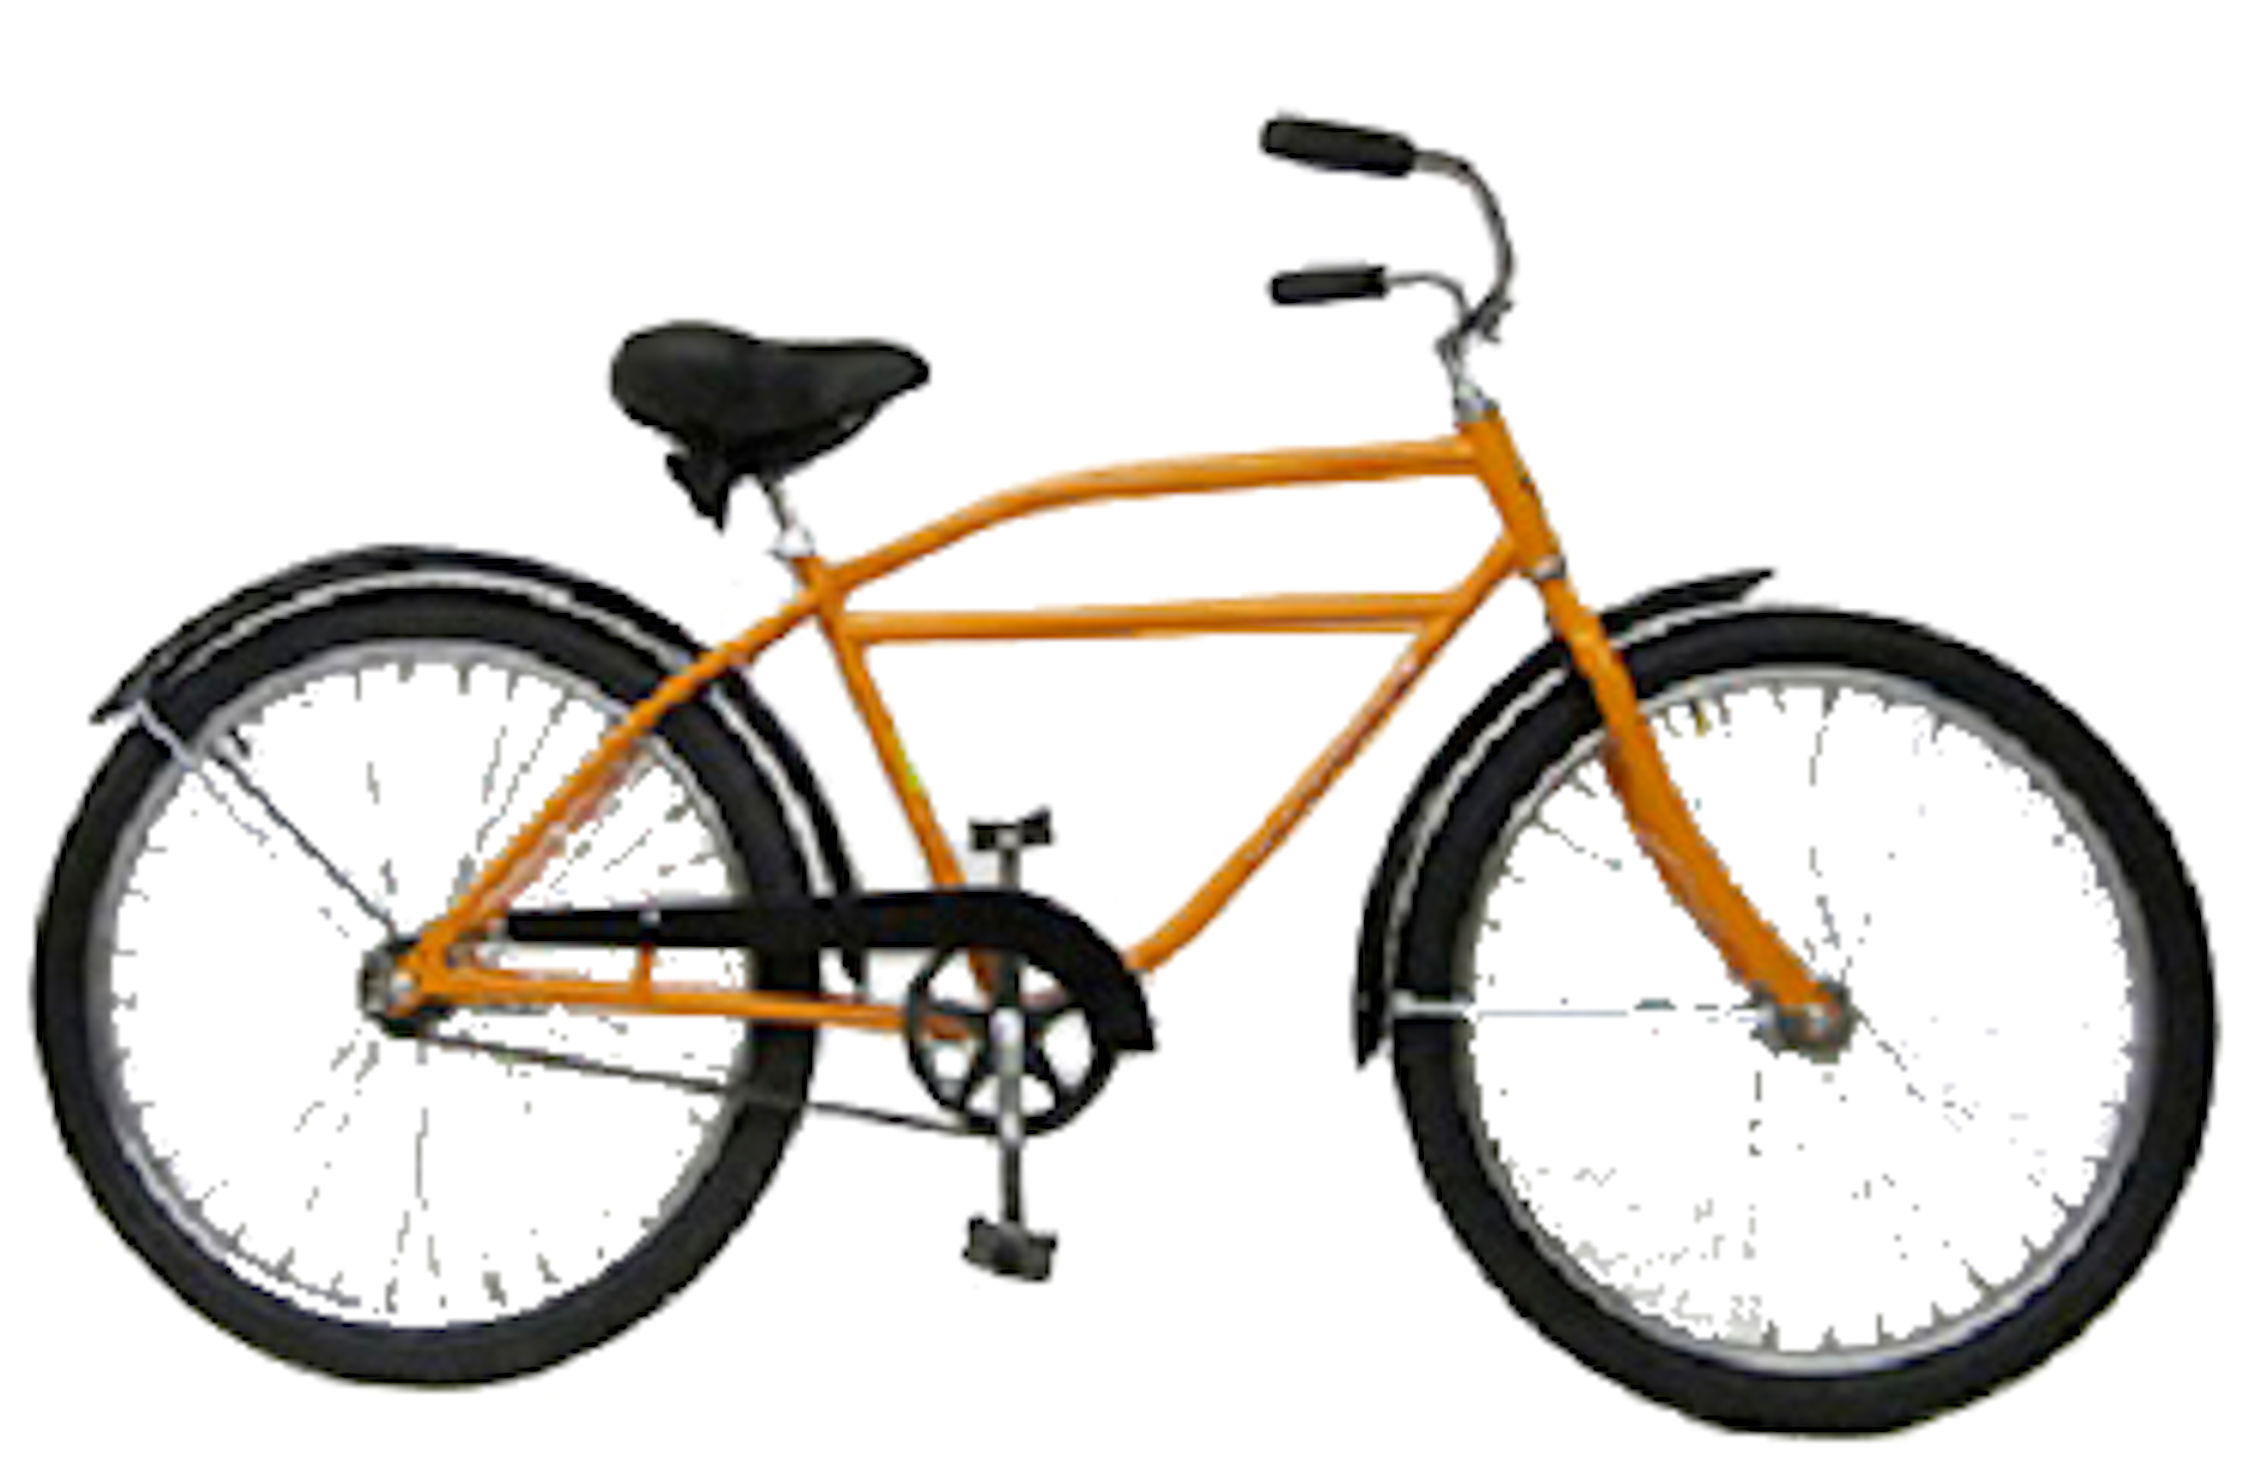 Workhorse Industrial Bicycles